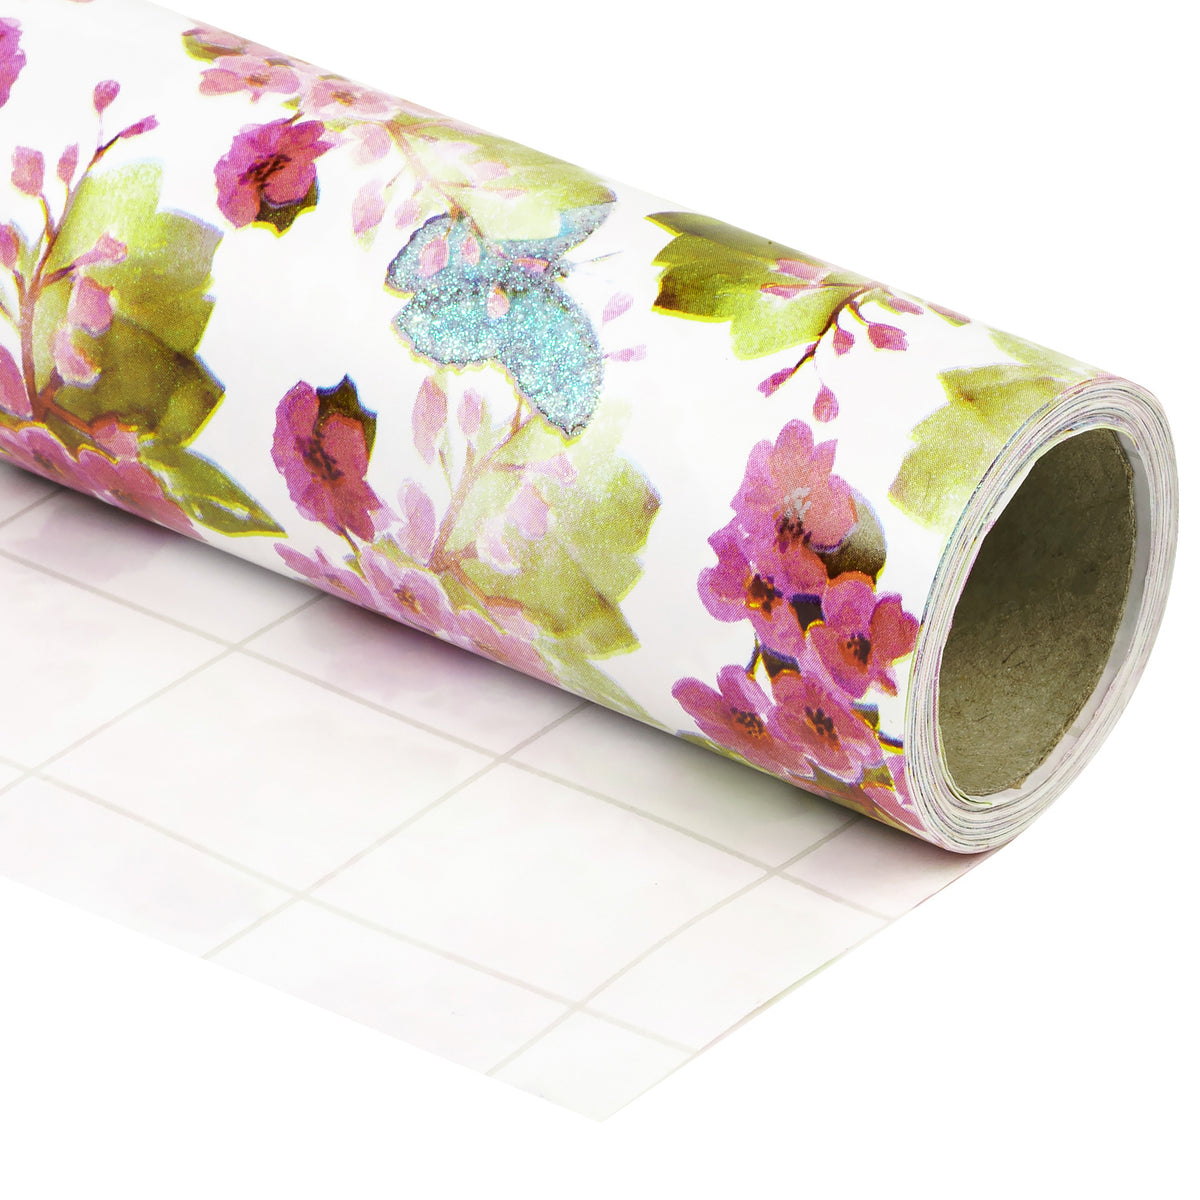 Wrapaholic-Glitter-Design-with-Cute-Butterfly-Gift-Wrapping-Paper-Roll-1